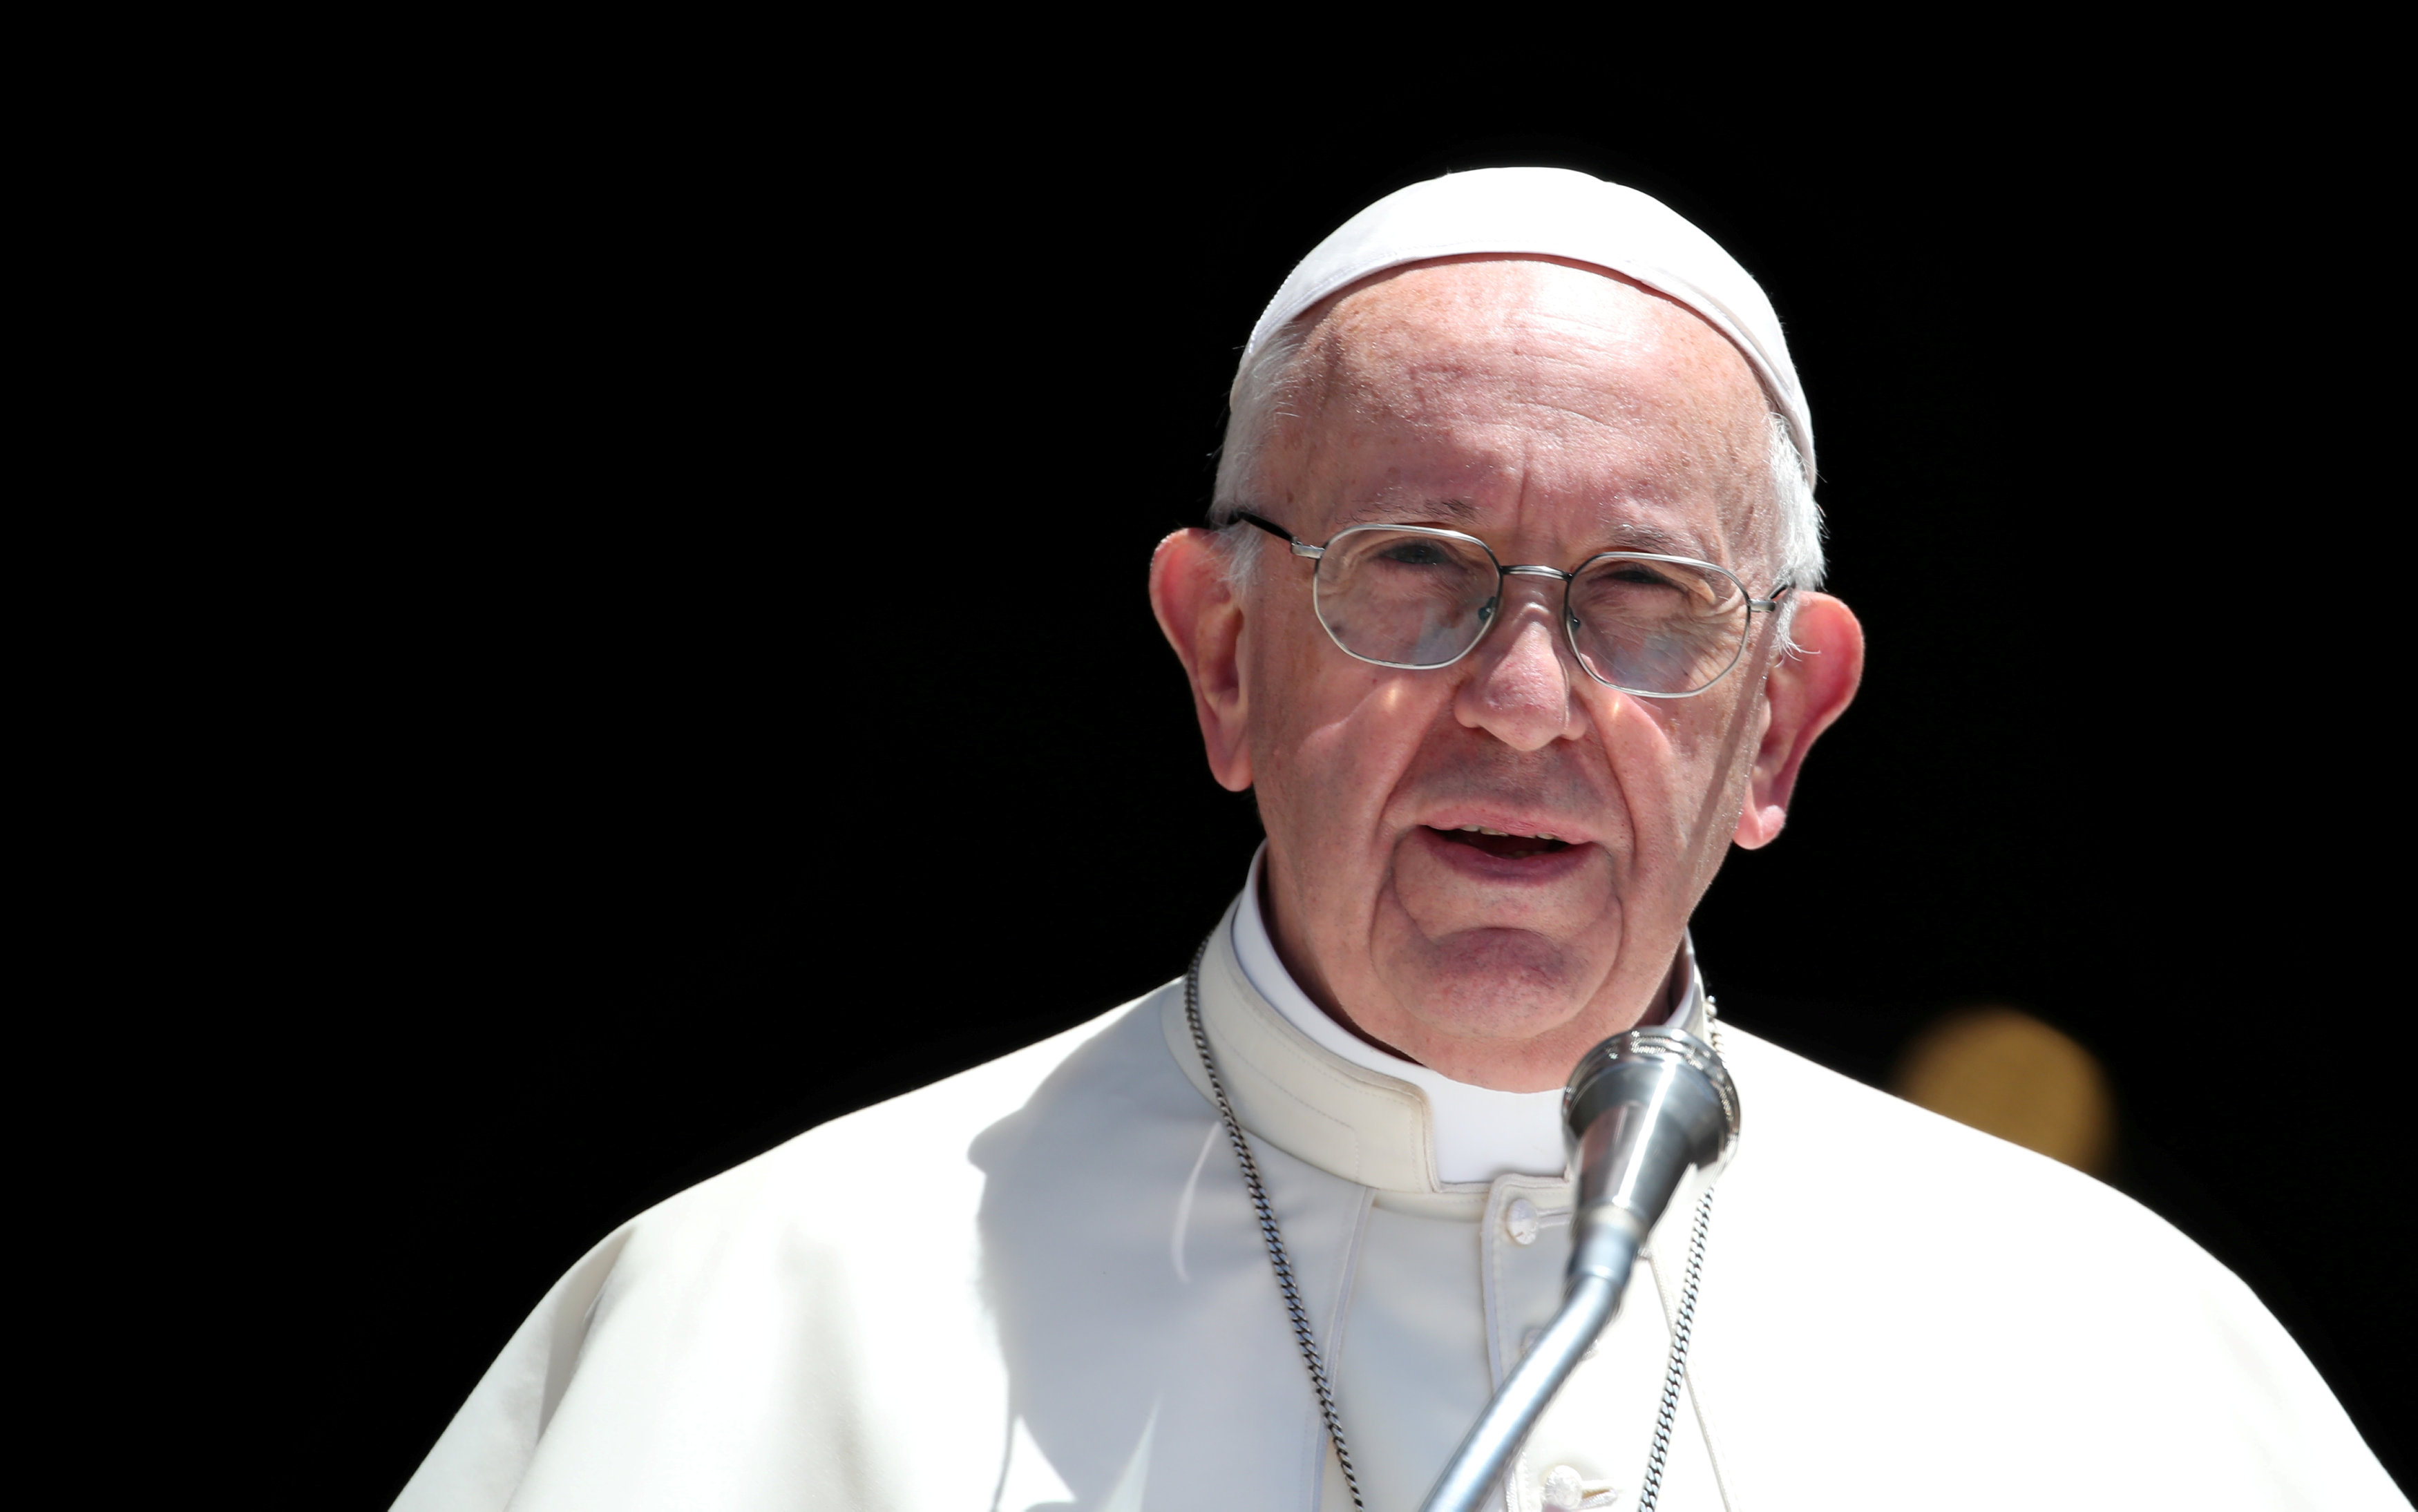 Italy: Vatican voices 'shame and sorrow' over damning sex abuse report